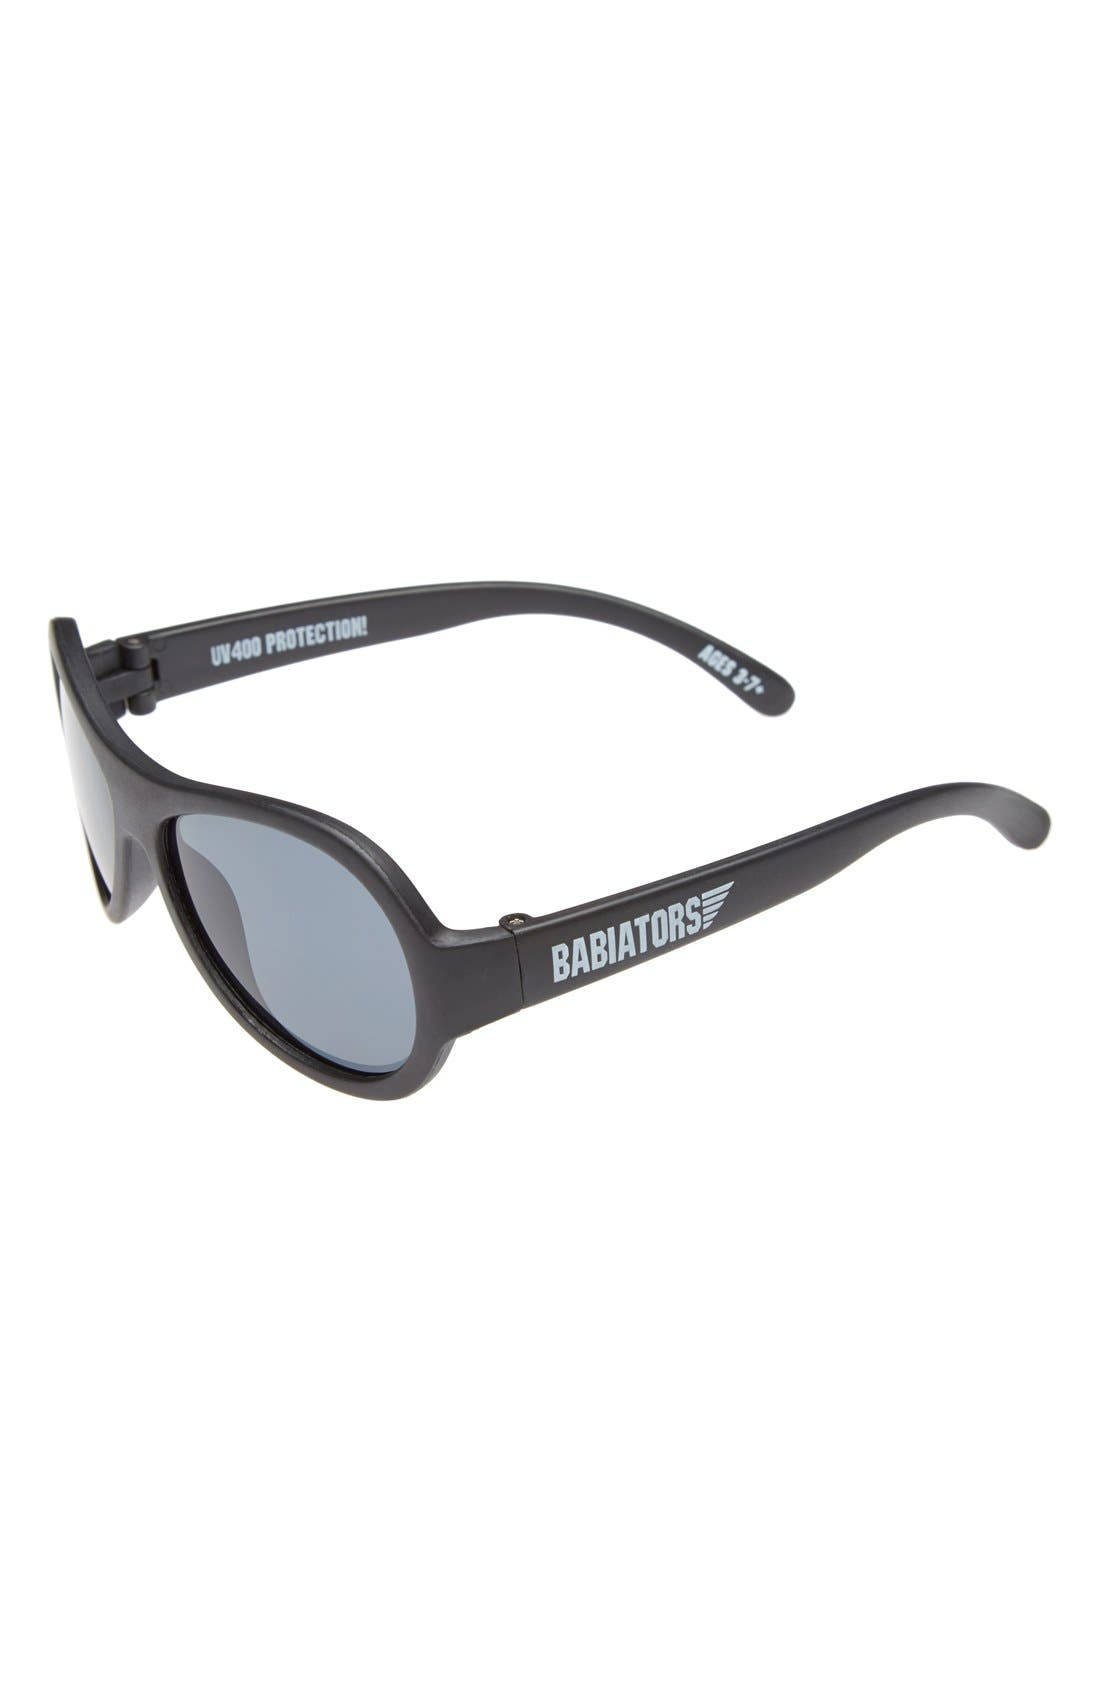 'Black Ops' Sunglasses,                         Main,                         color, Black Ops